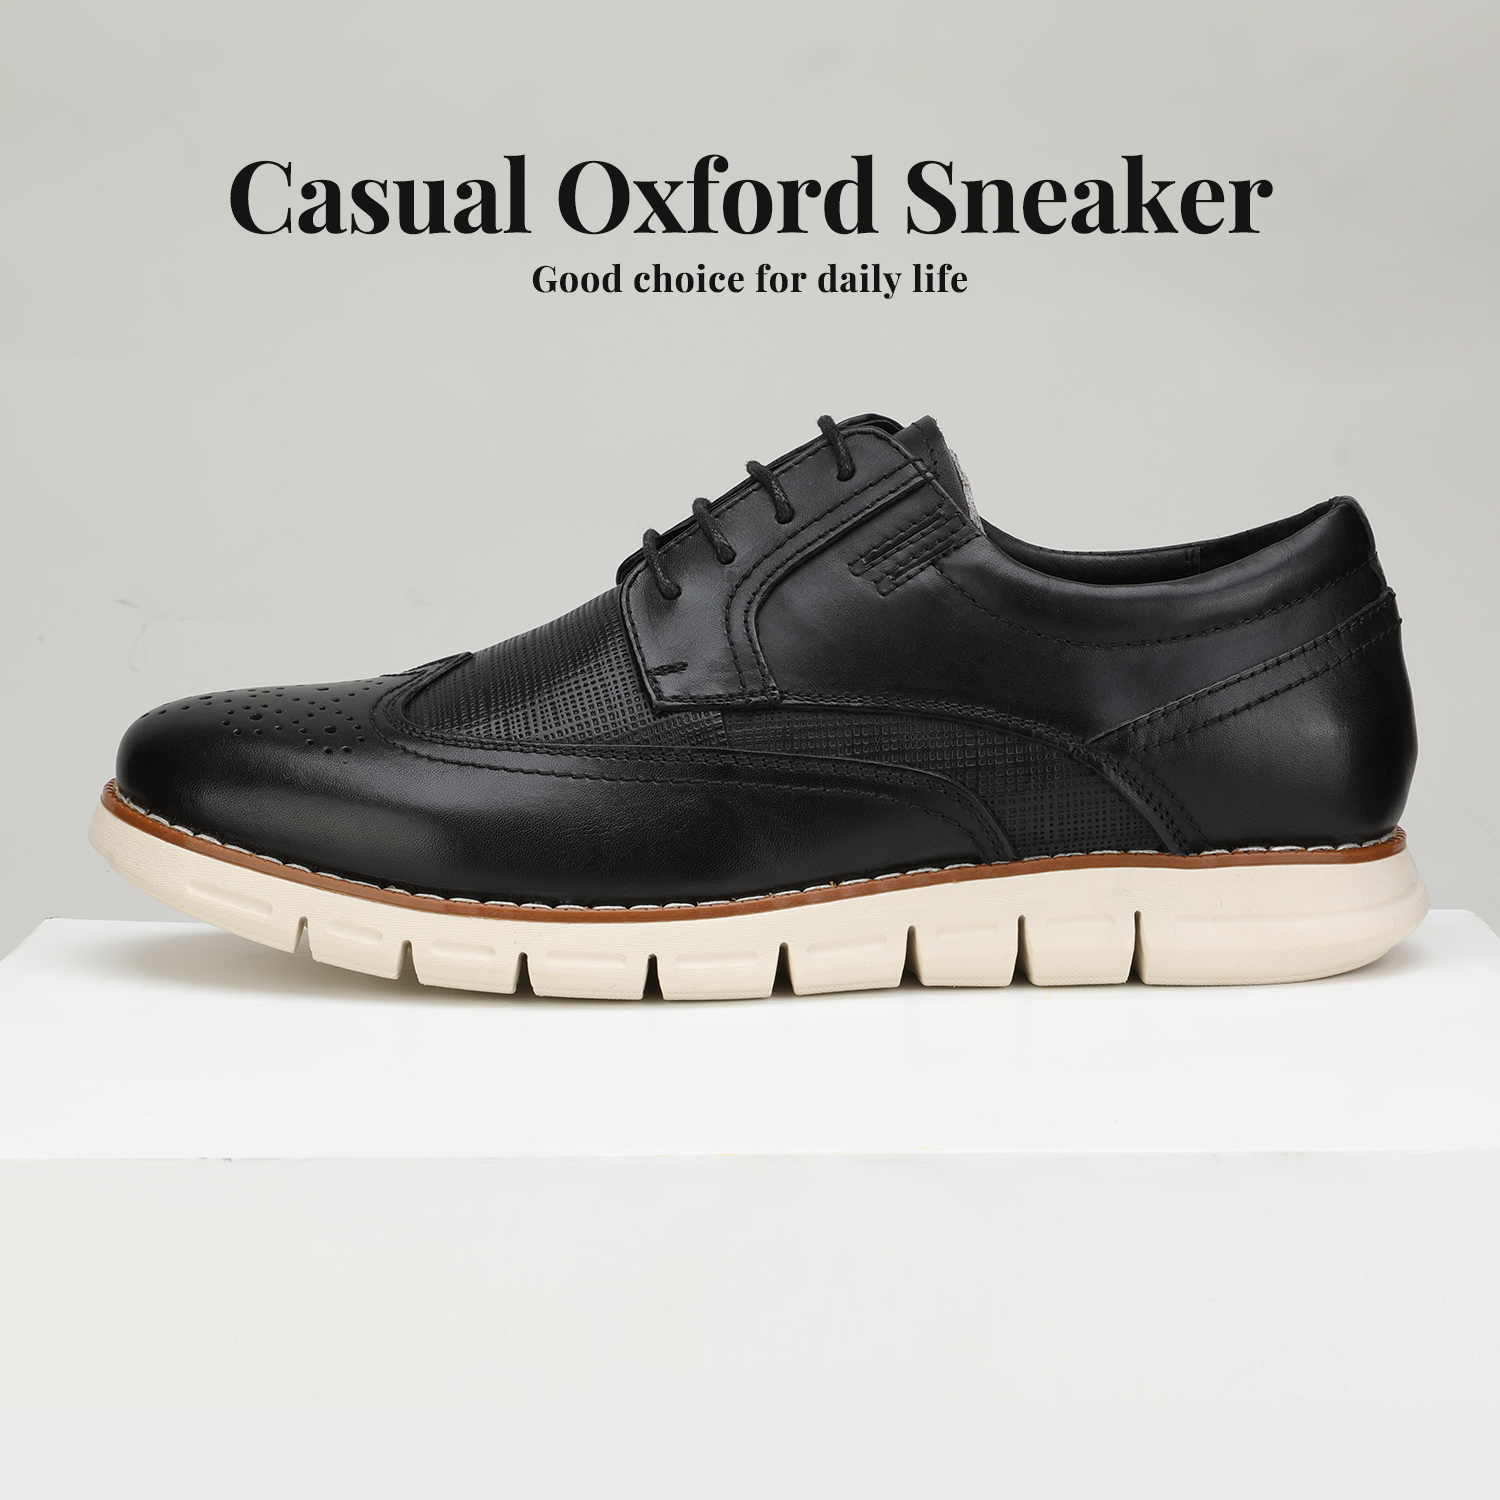 Men-s-Genuine-Leather-Casual-Formal-Sneakers-Lace-up-Business-Oxford-Dress-Shoes thumbnail 15